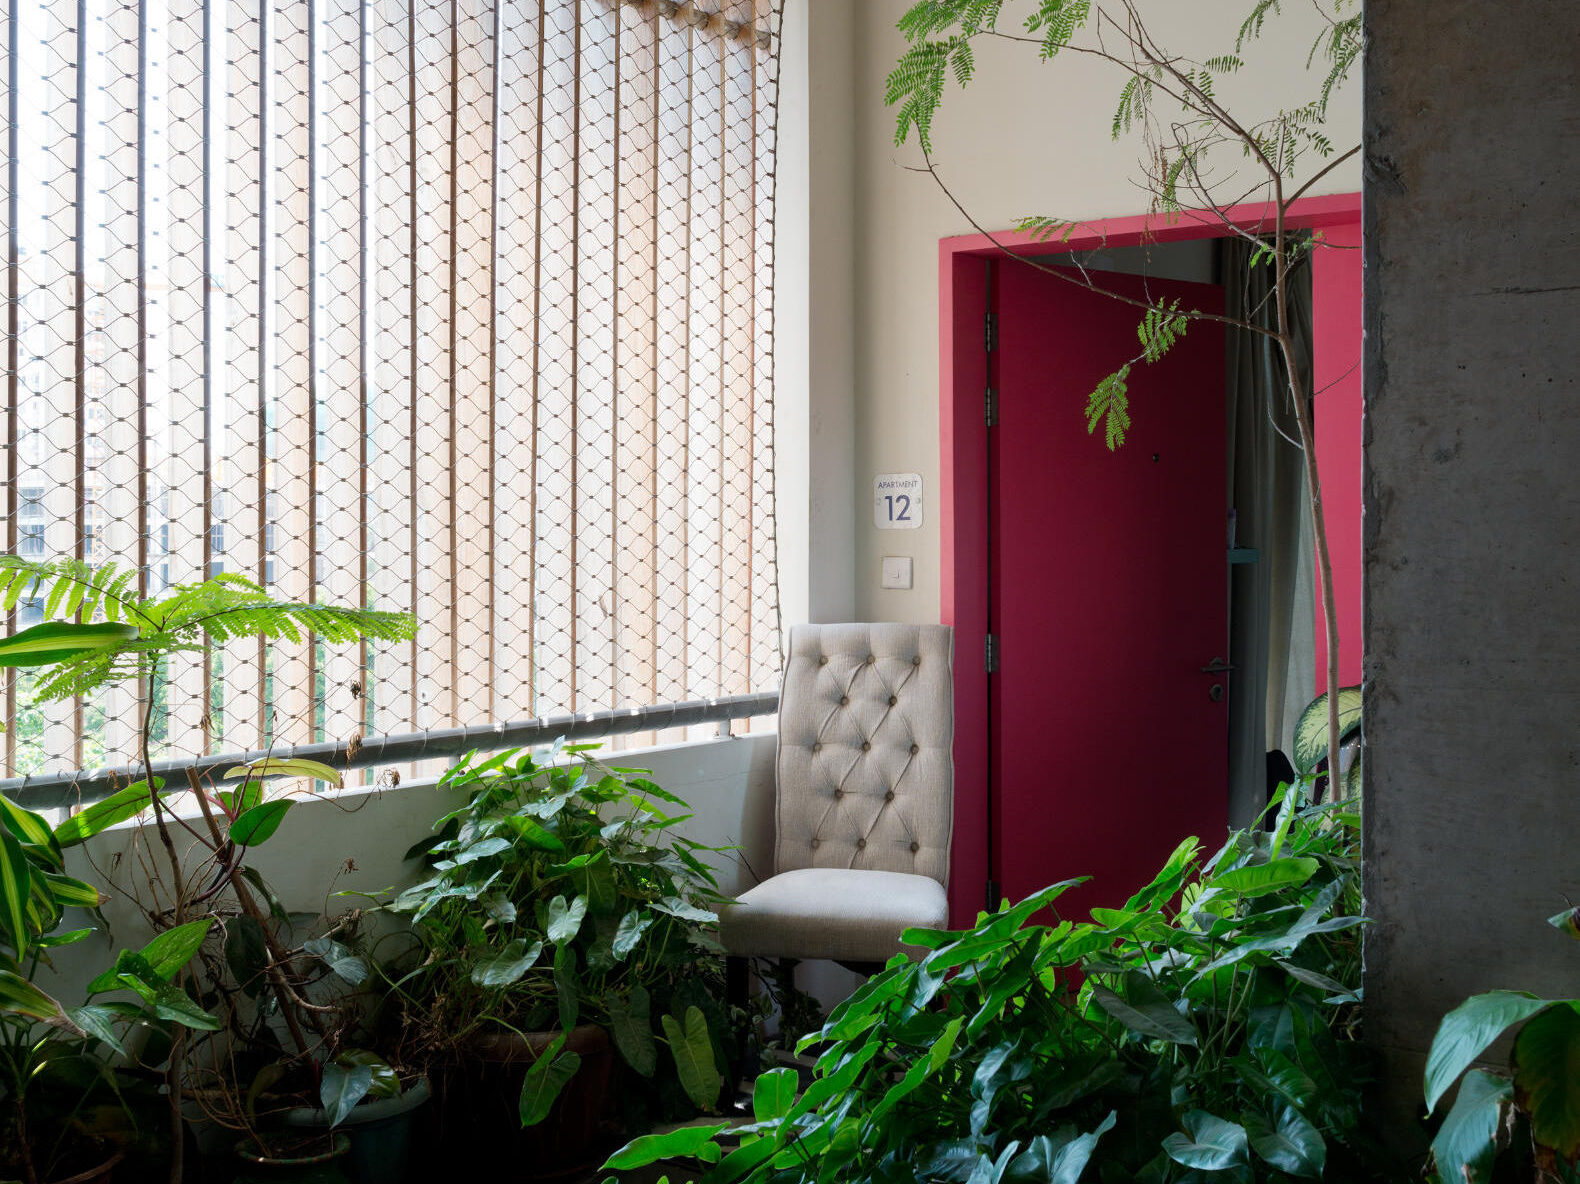 Red apartment entry door surrounded by plants